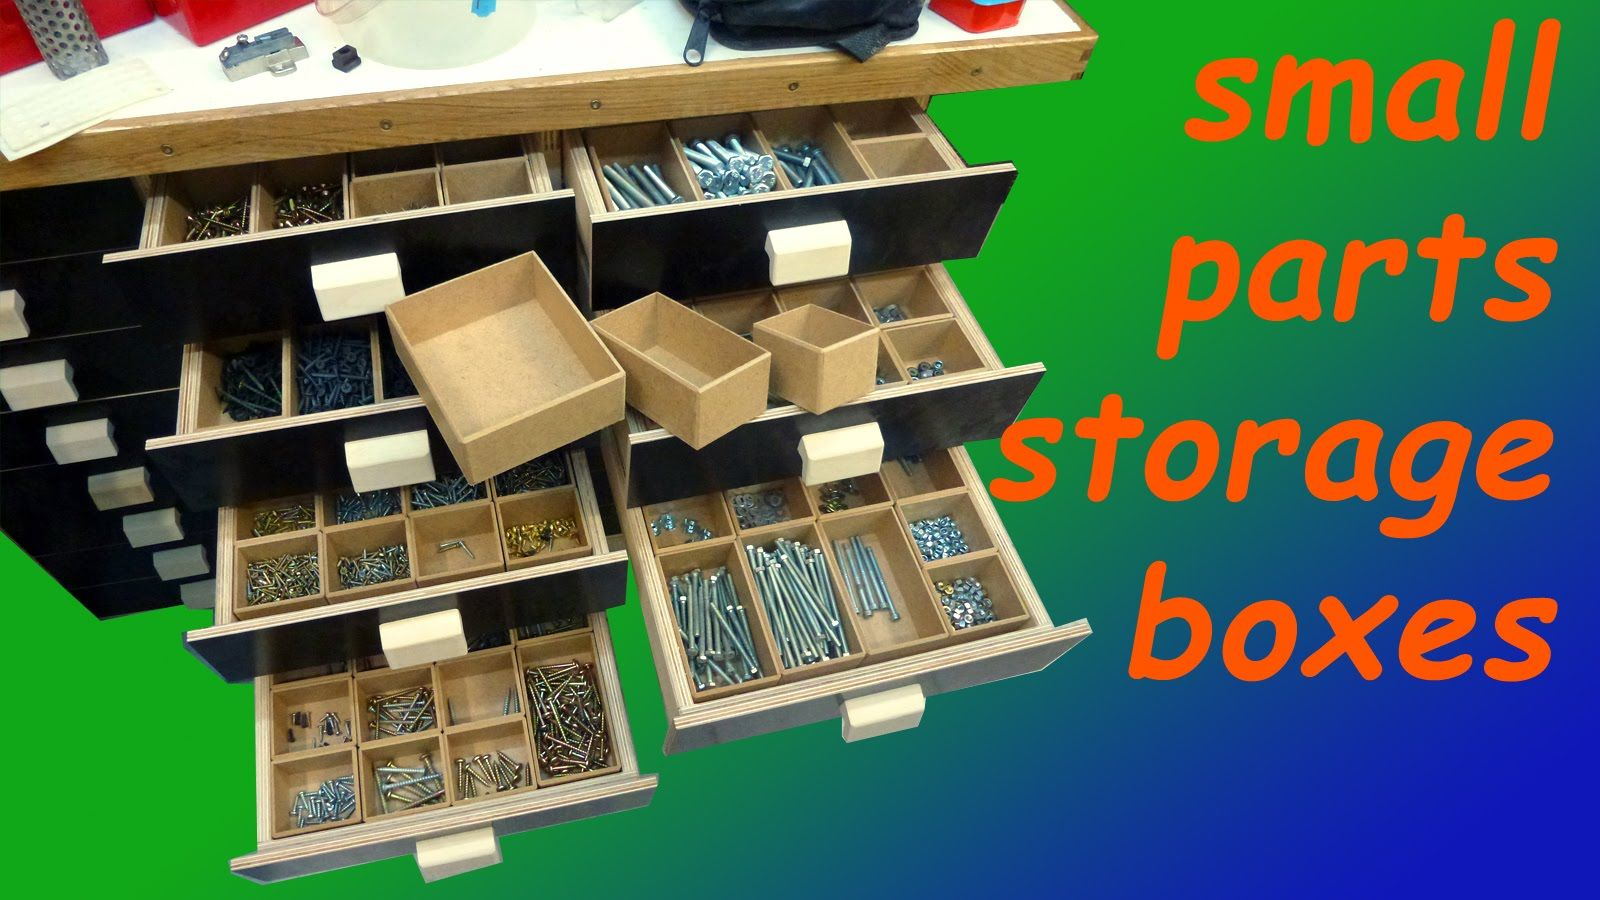 Small parts storage boxes now thatus a lot of work taller de